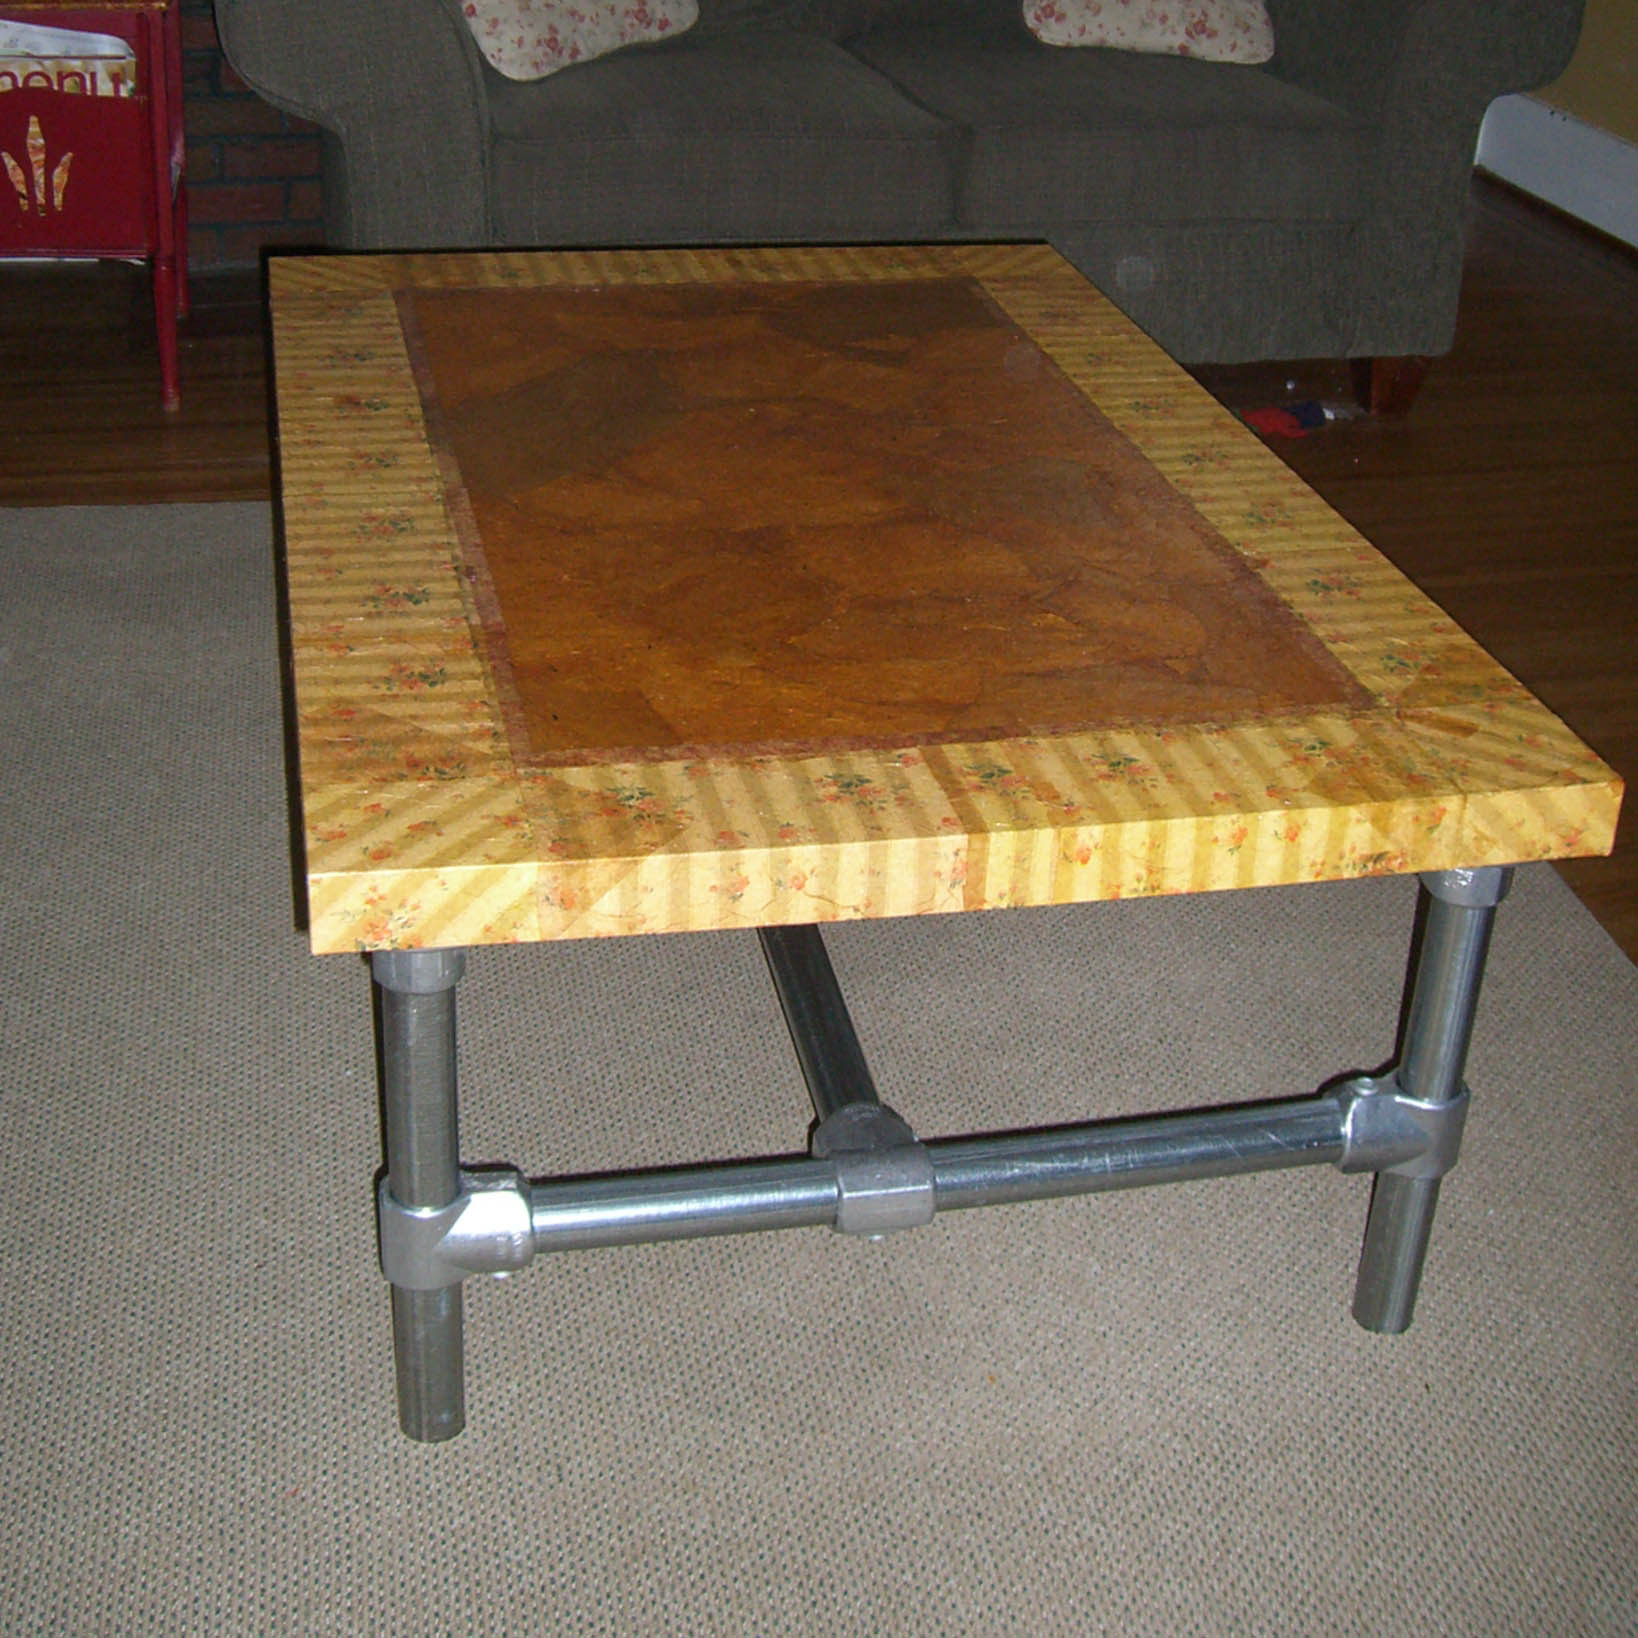 Kee Klamp Coffee Table IKEA Hack